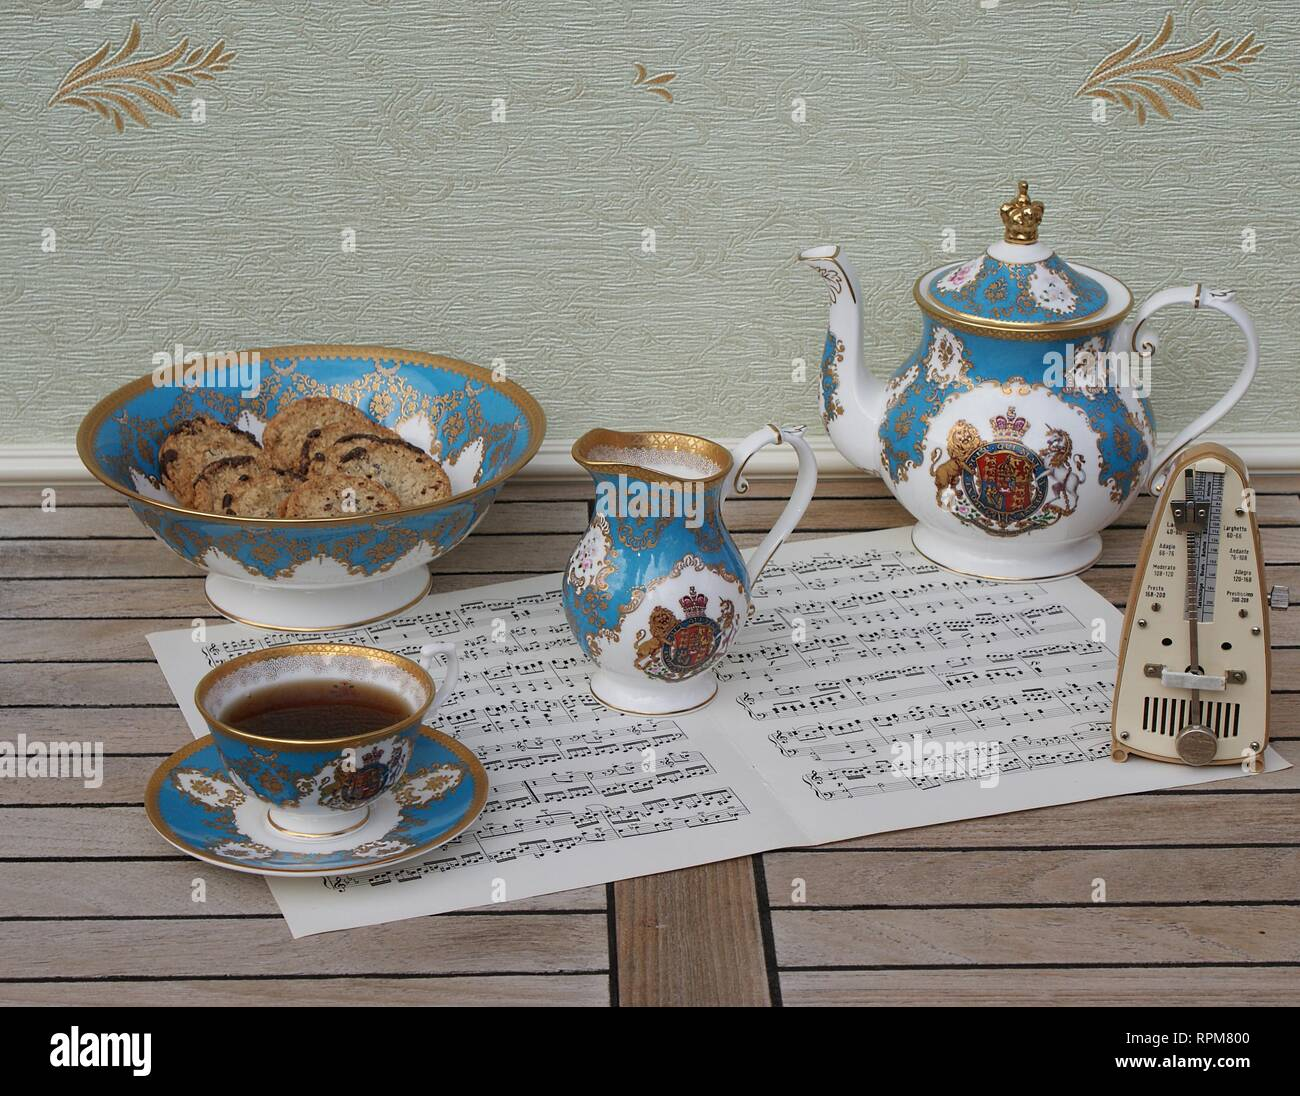 English teacup with saucer, teapot, cream jug and a cake bowl with cookies, fine bone china porcelain, and a metronome for music on a sheet of music - Stock Image